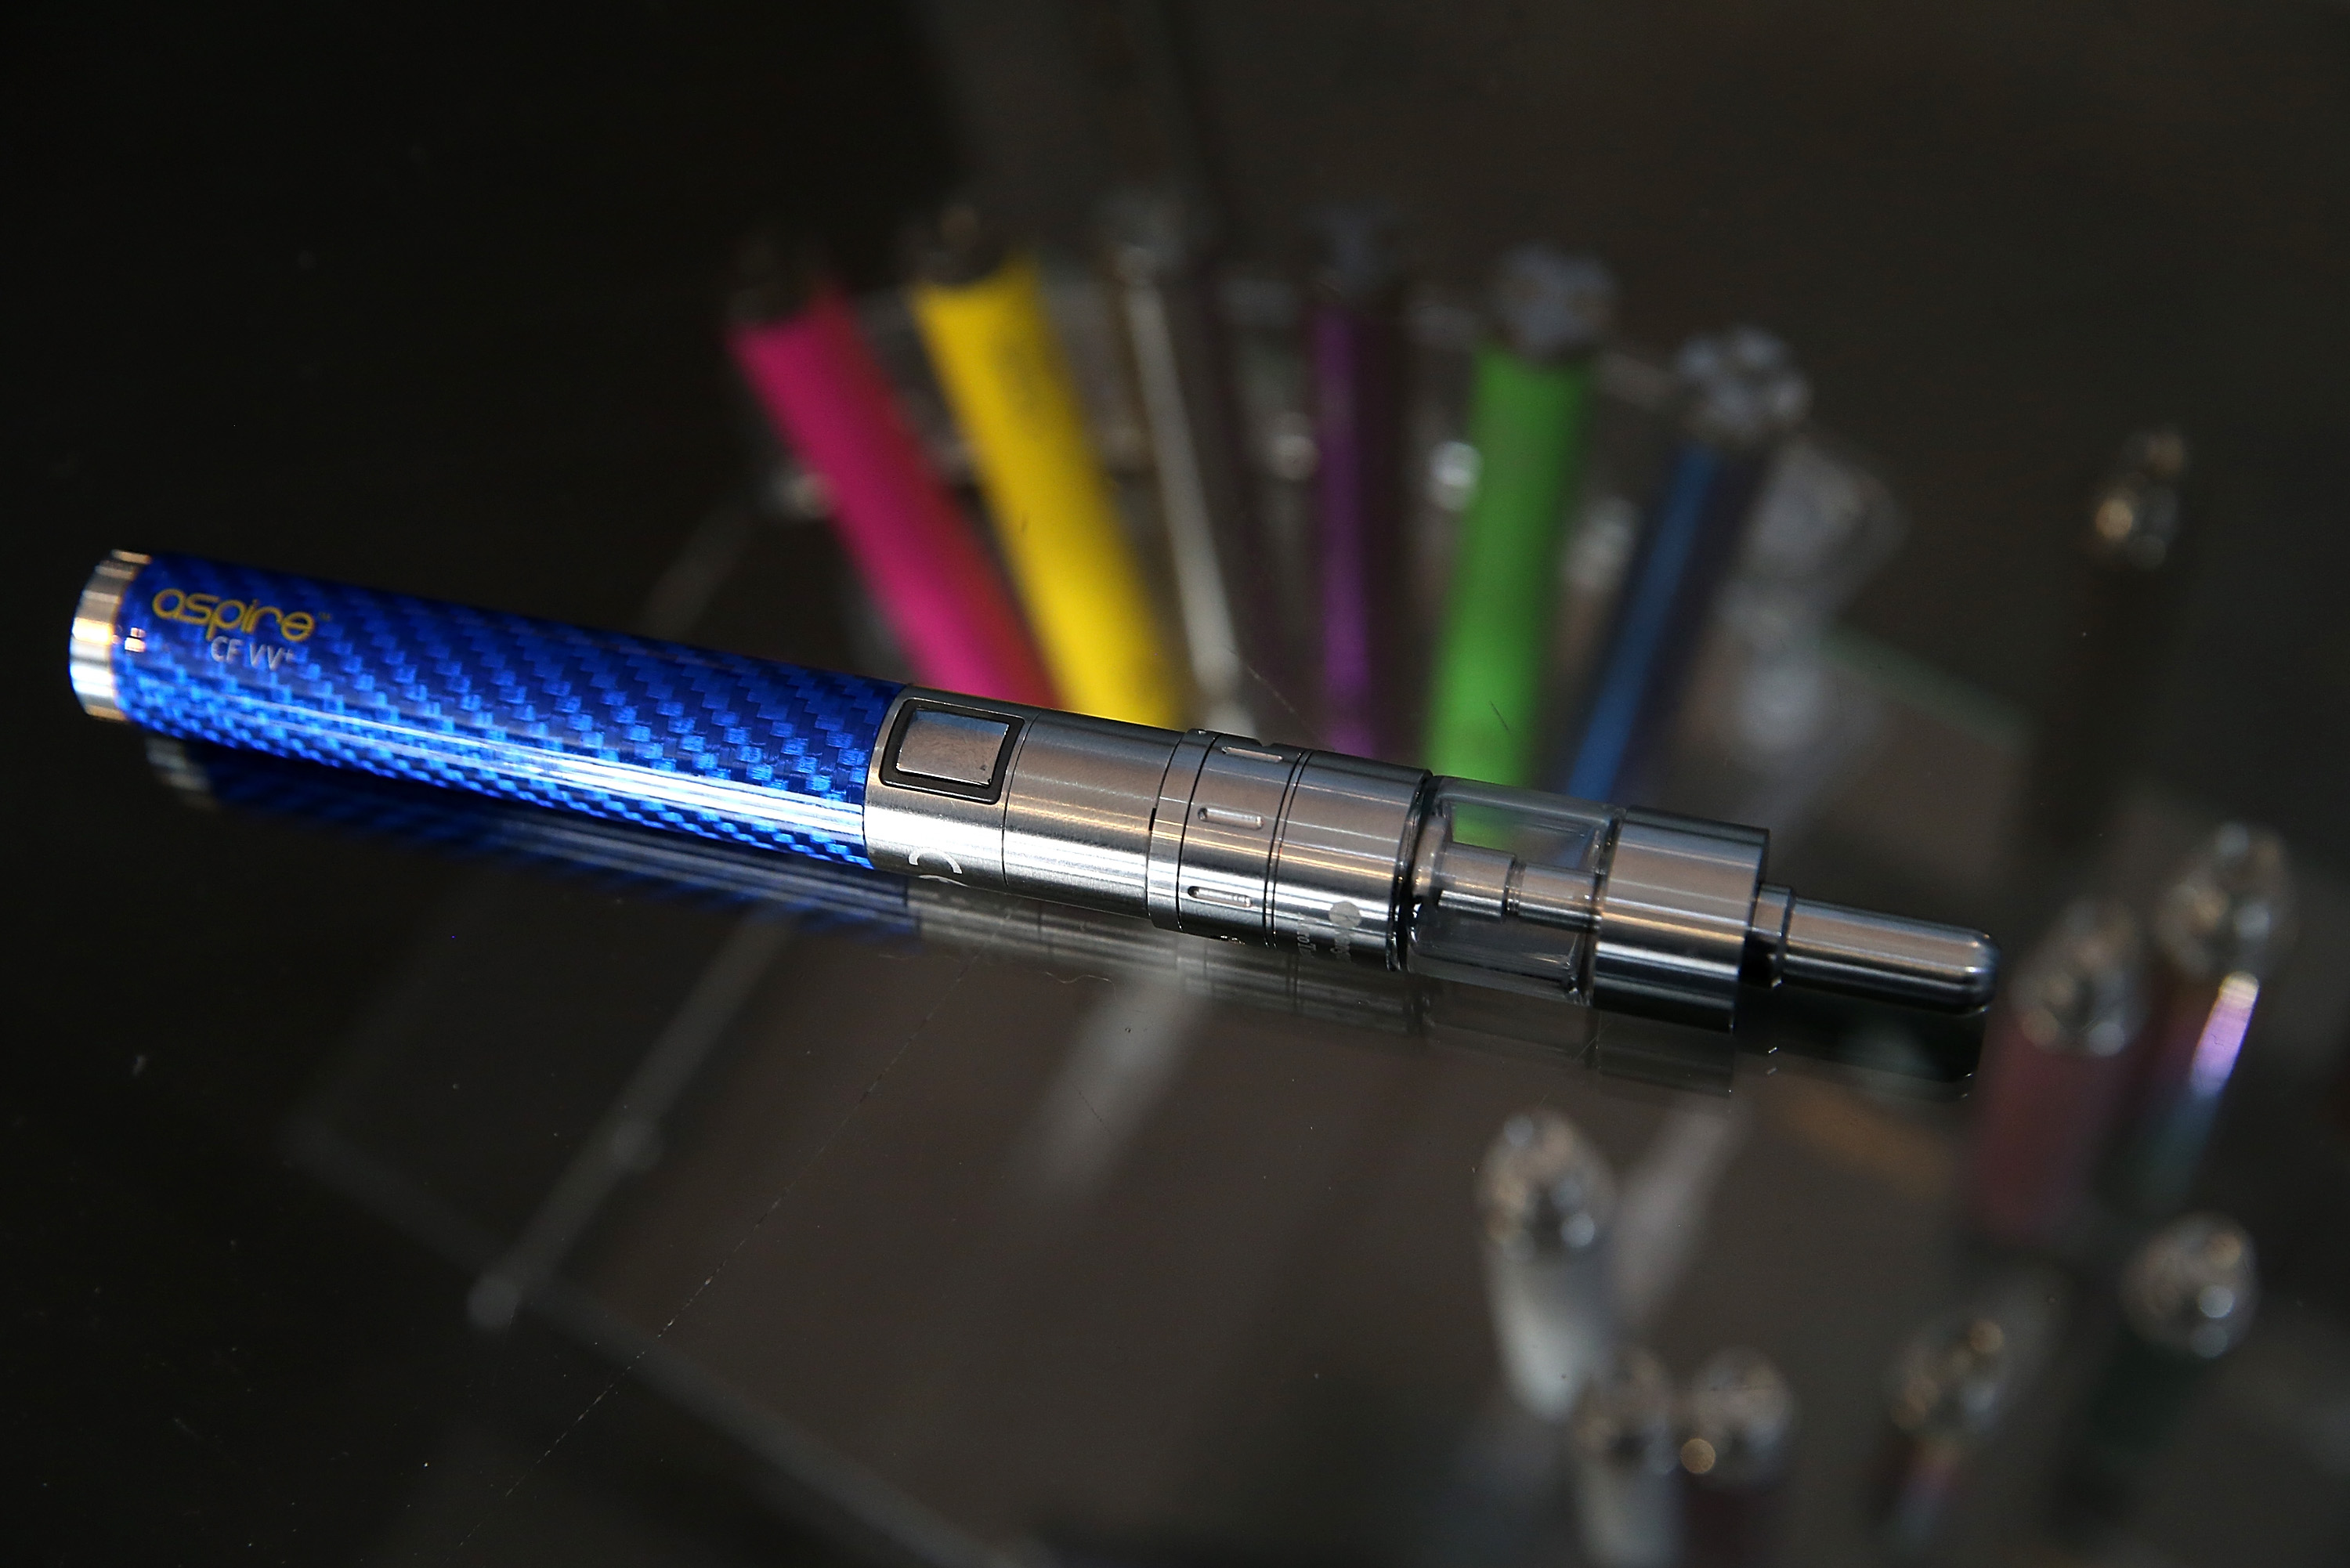 California Department of Public Health Calls E-Cigarettes A Health Threat And Calls For Regulation